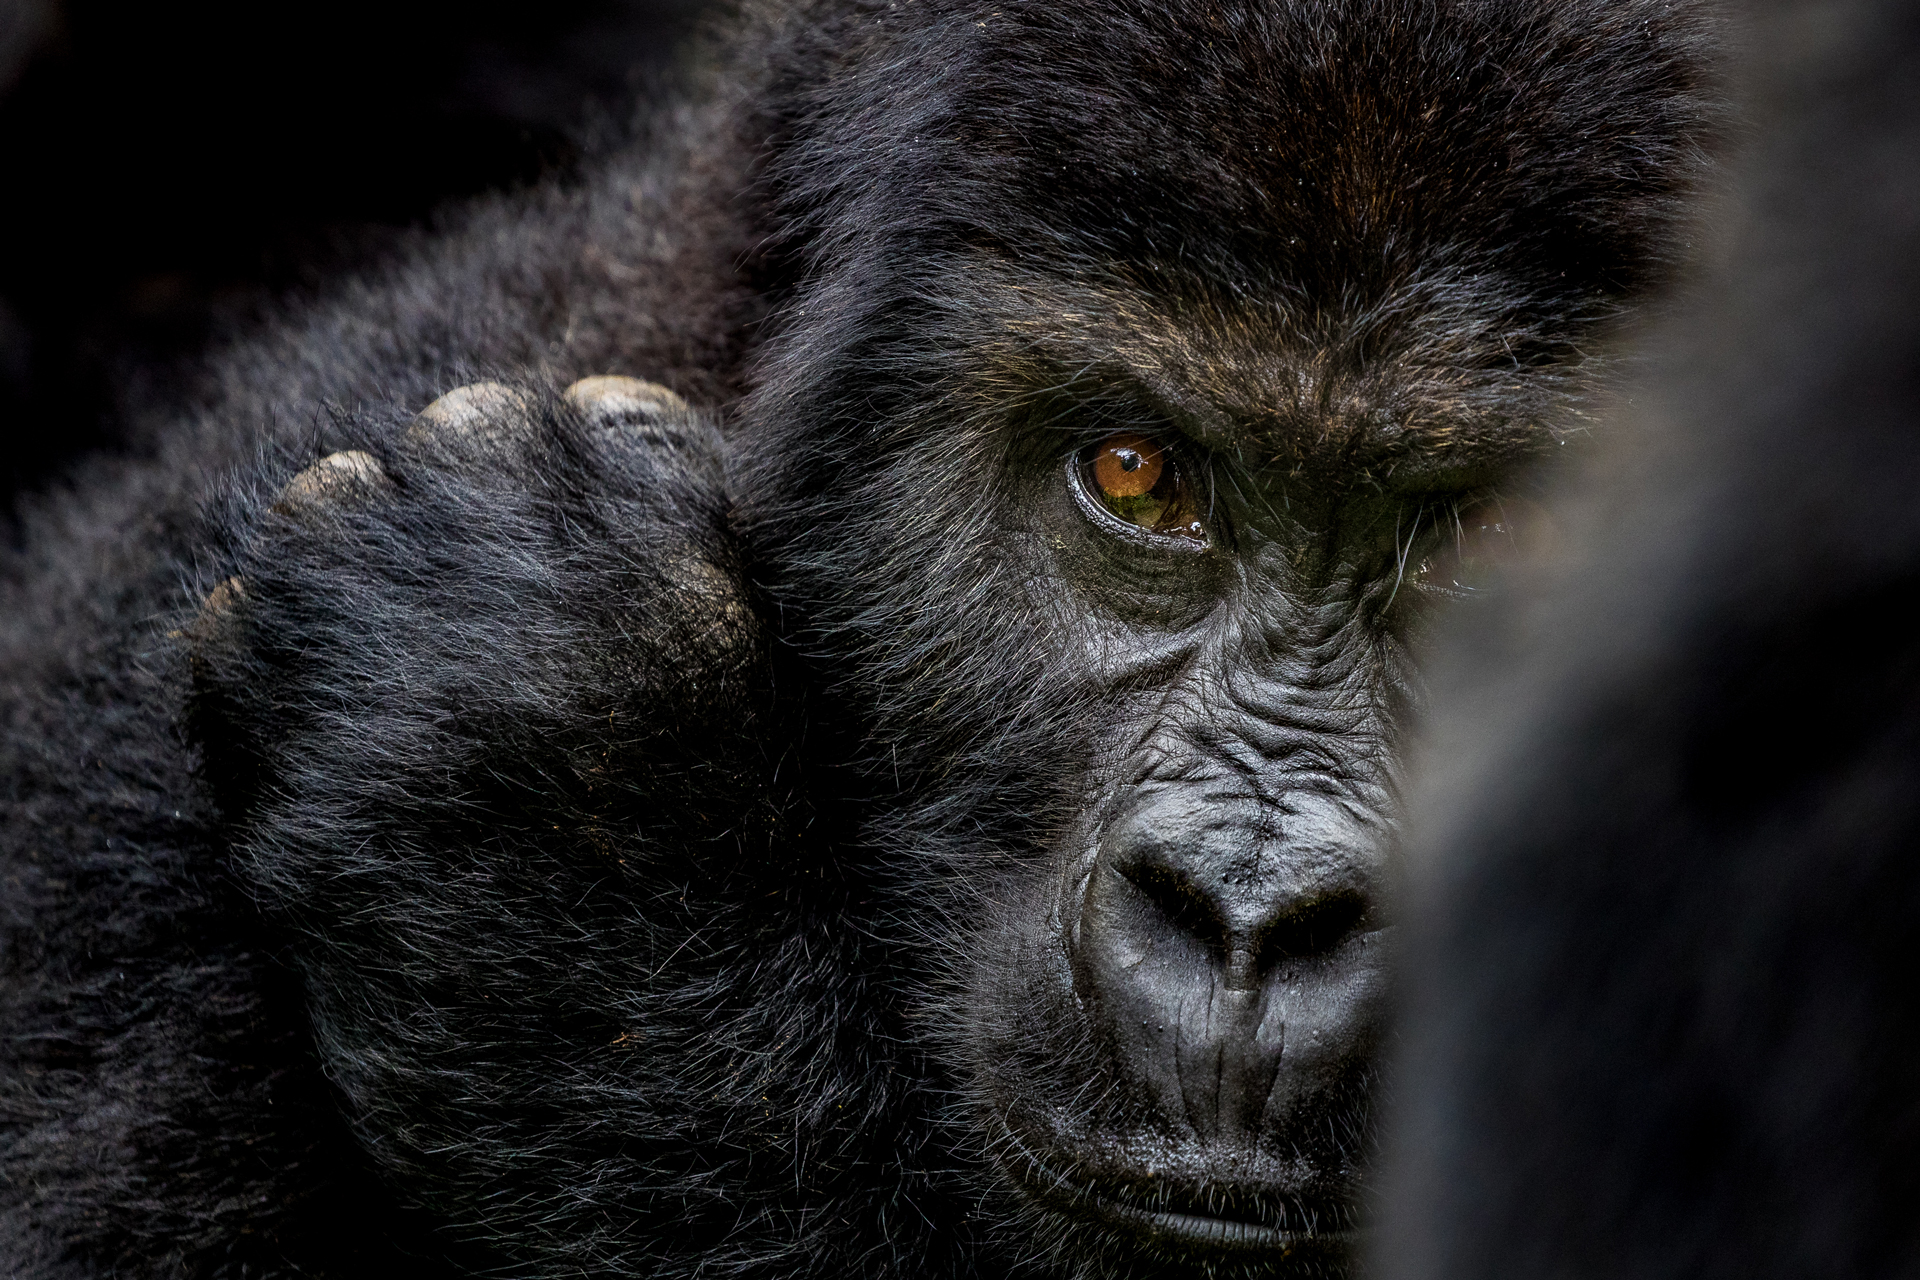 Close up of a Grauer's gorilla